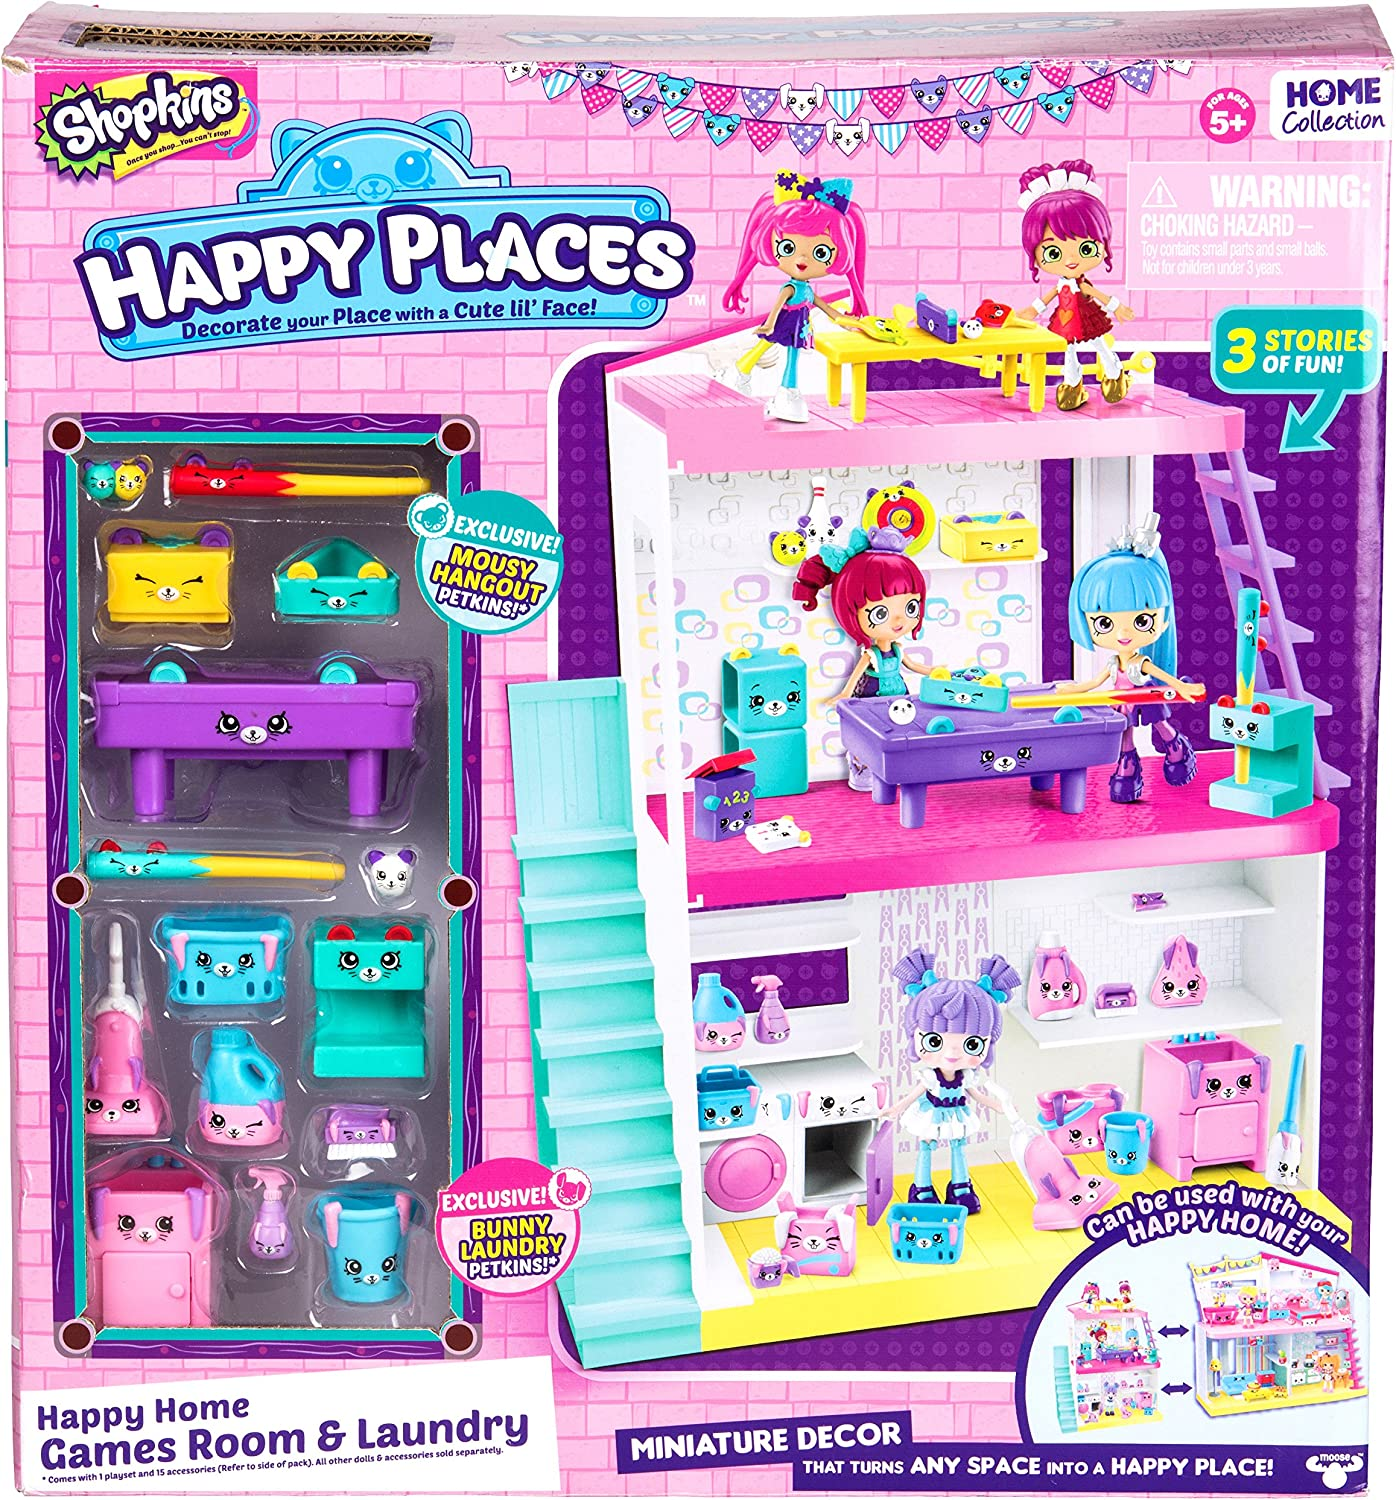 Shopkins Happy Places Home Laundry & Games Room Studio Toy